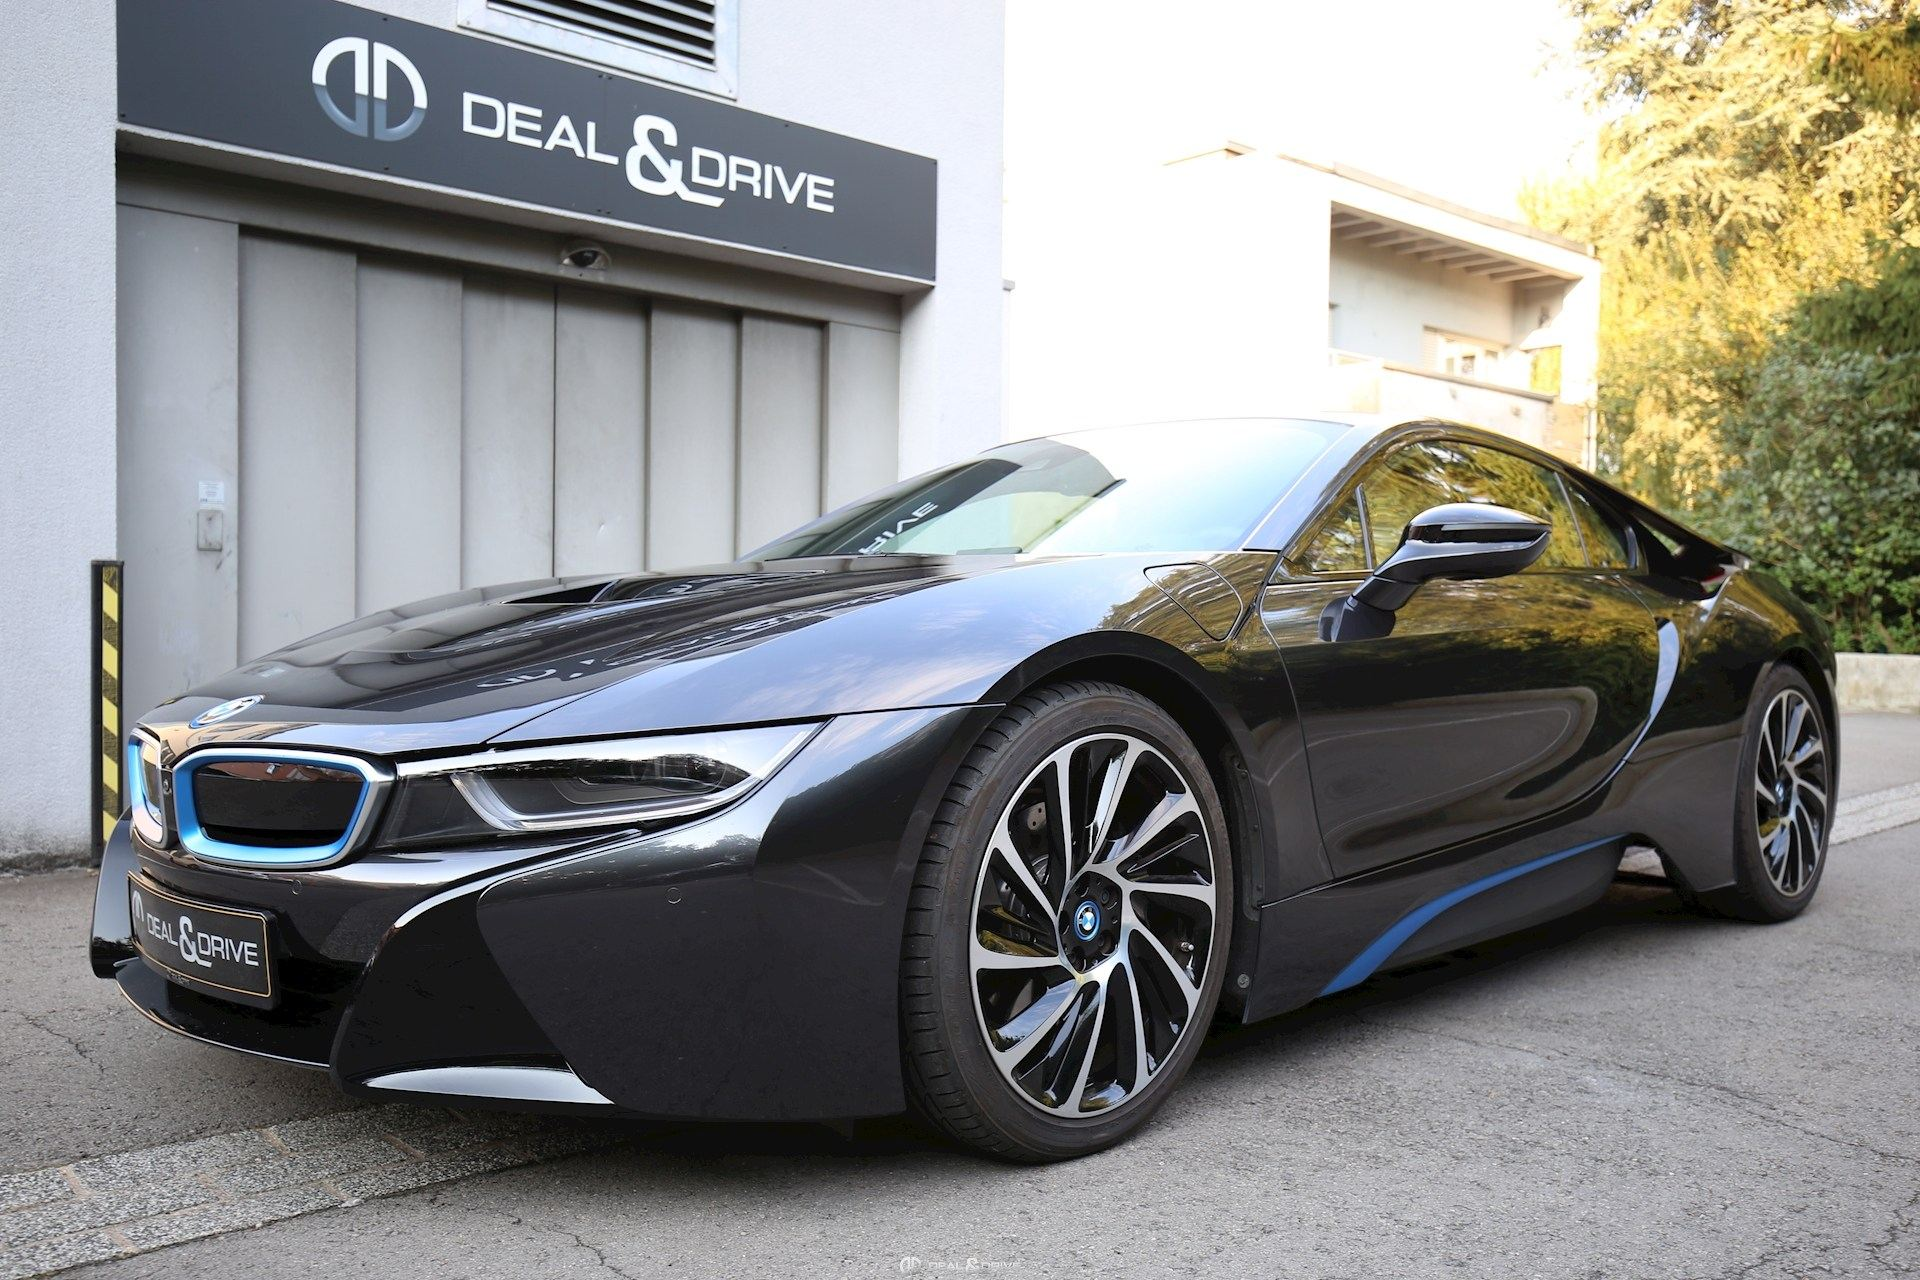 bmw i8 hybride deal drive. Black Bedroom Furniture Sets. Home Design Ideas